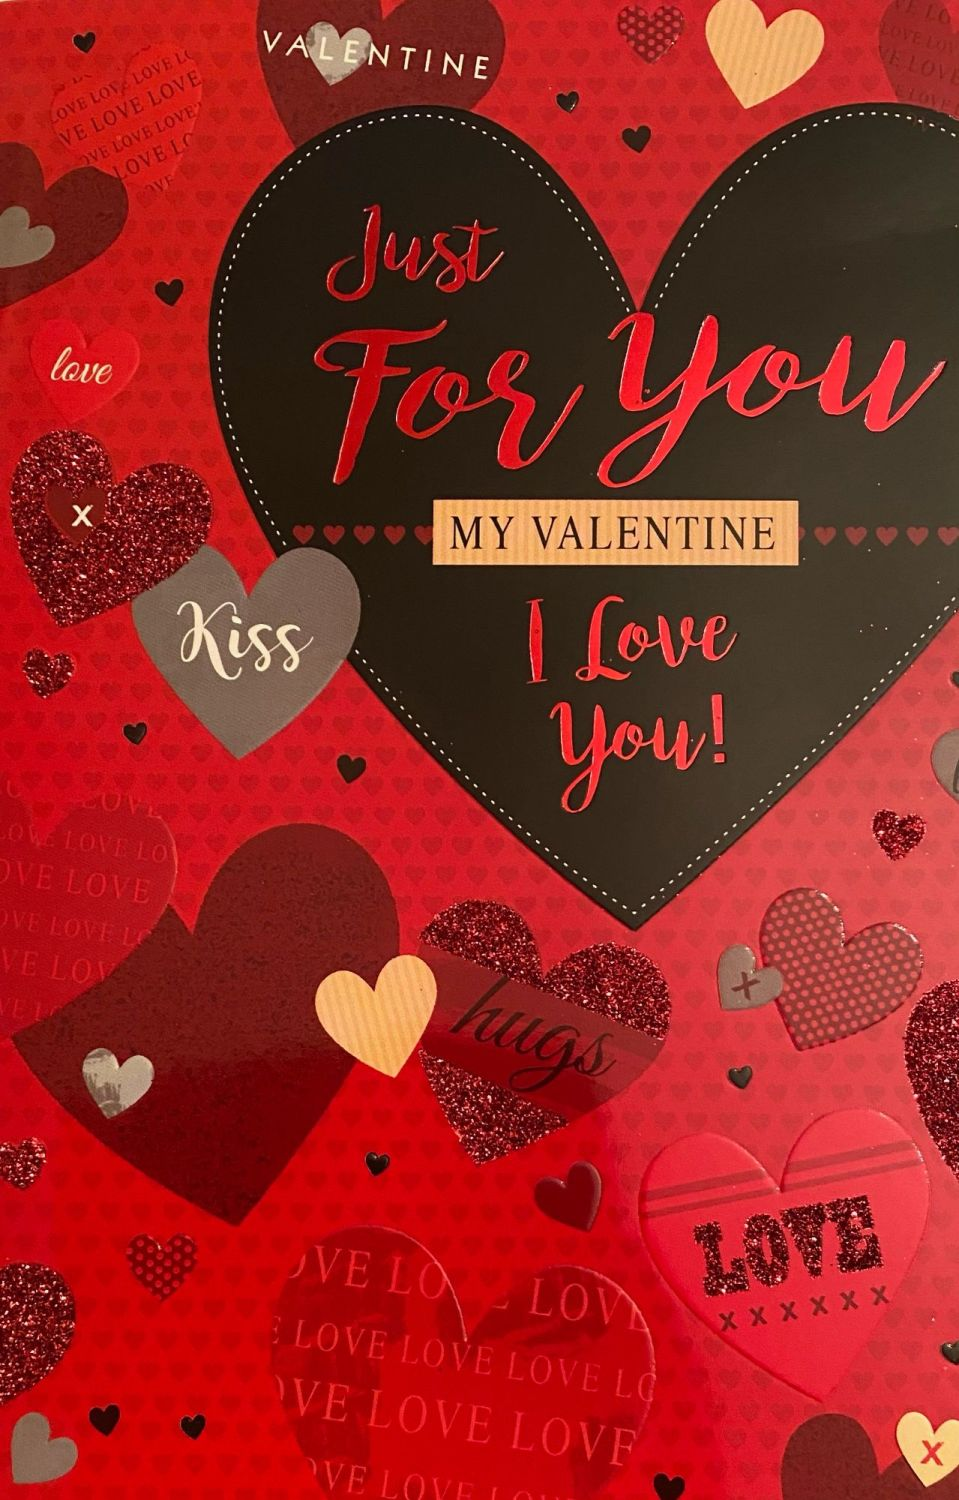 Just For You My Valentine I Love You - Card